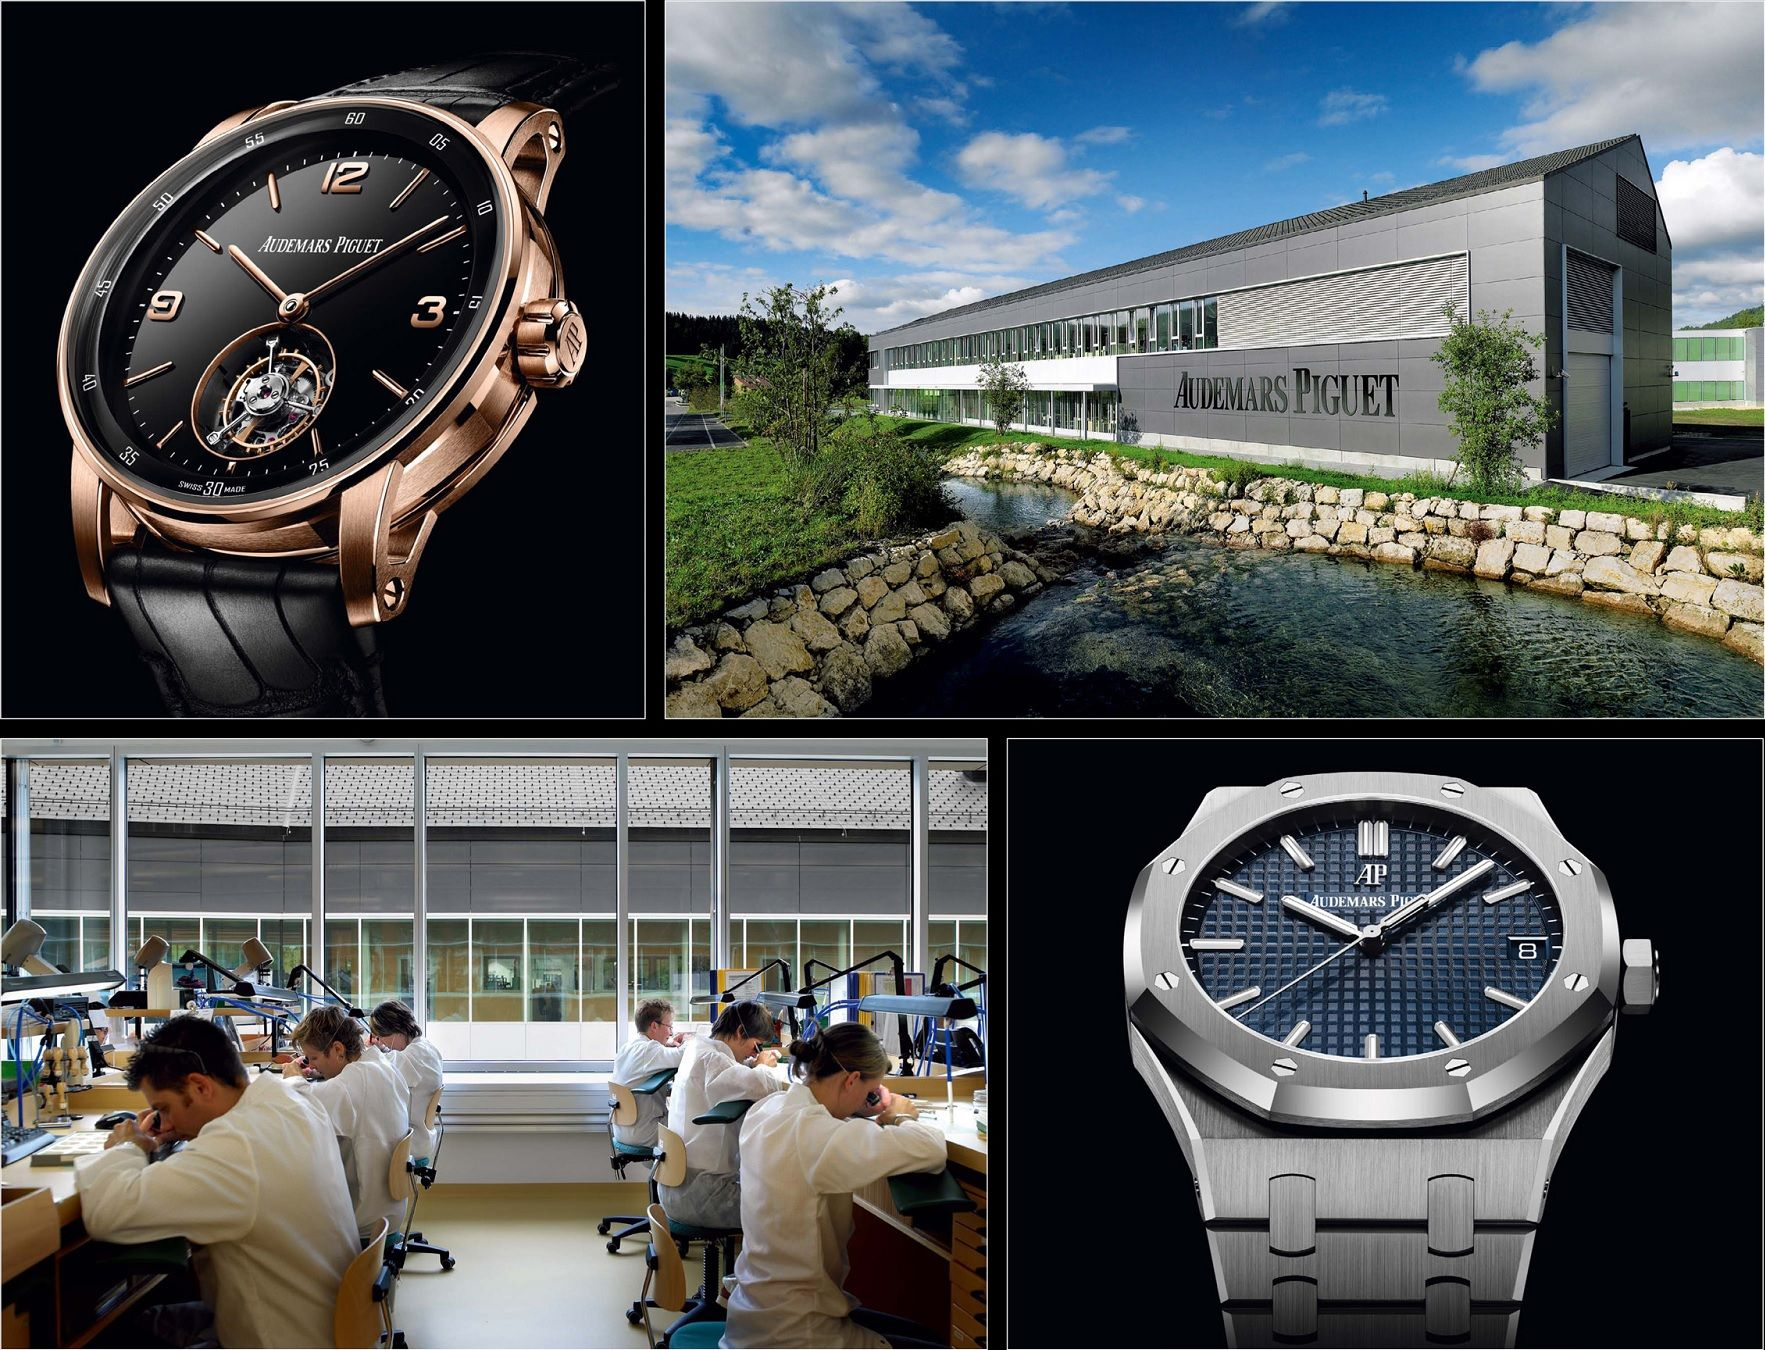 AUDEMARS PIGUET Le Brassus 2019 - watch